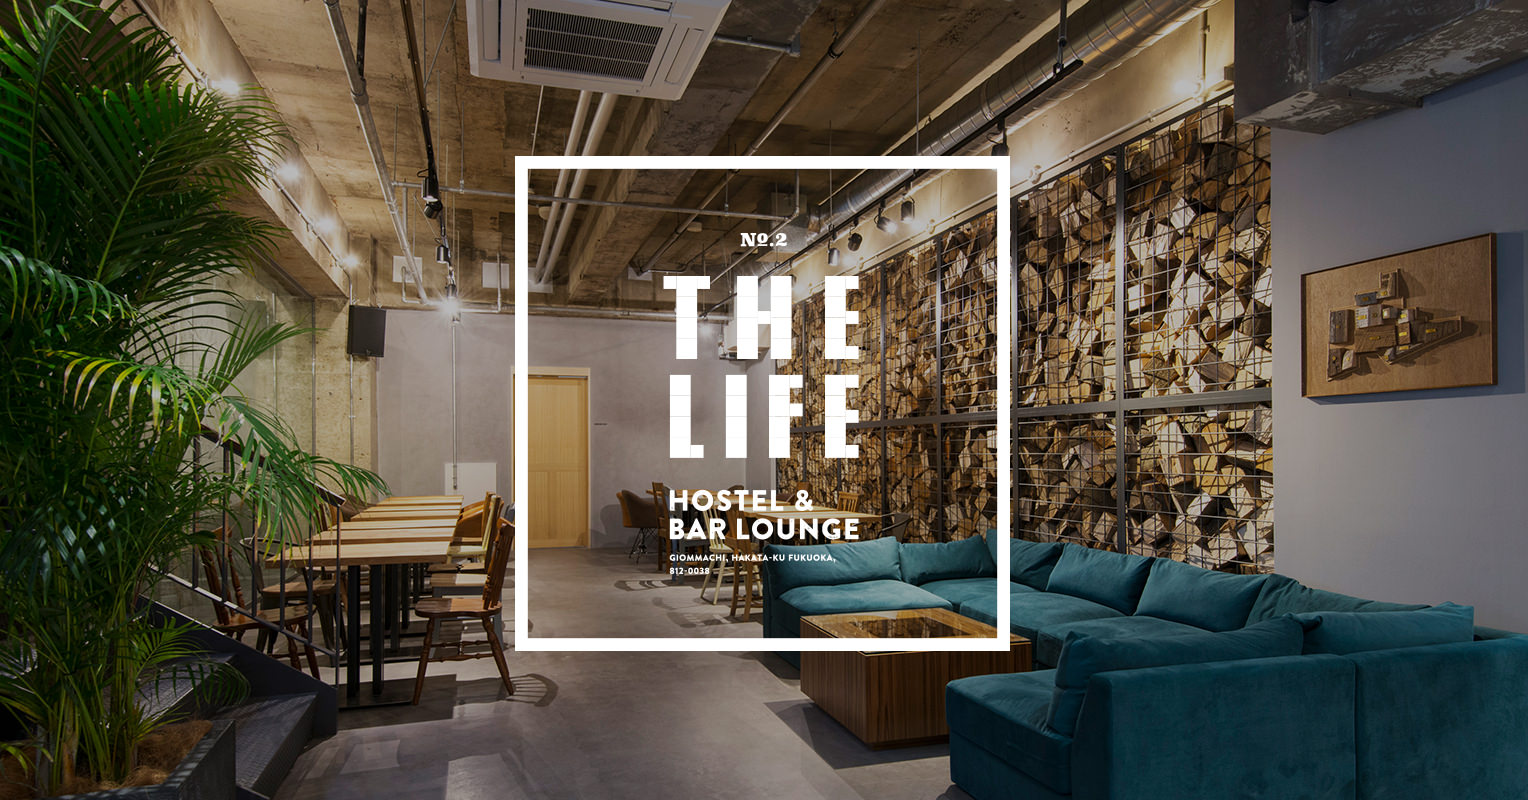 What If People From Different Cultures >> THE LIFE HOSTEL & BAR LOUNGE in HAKATA FUKUOKA